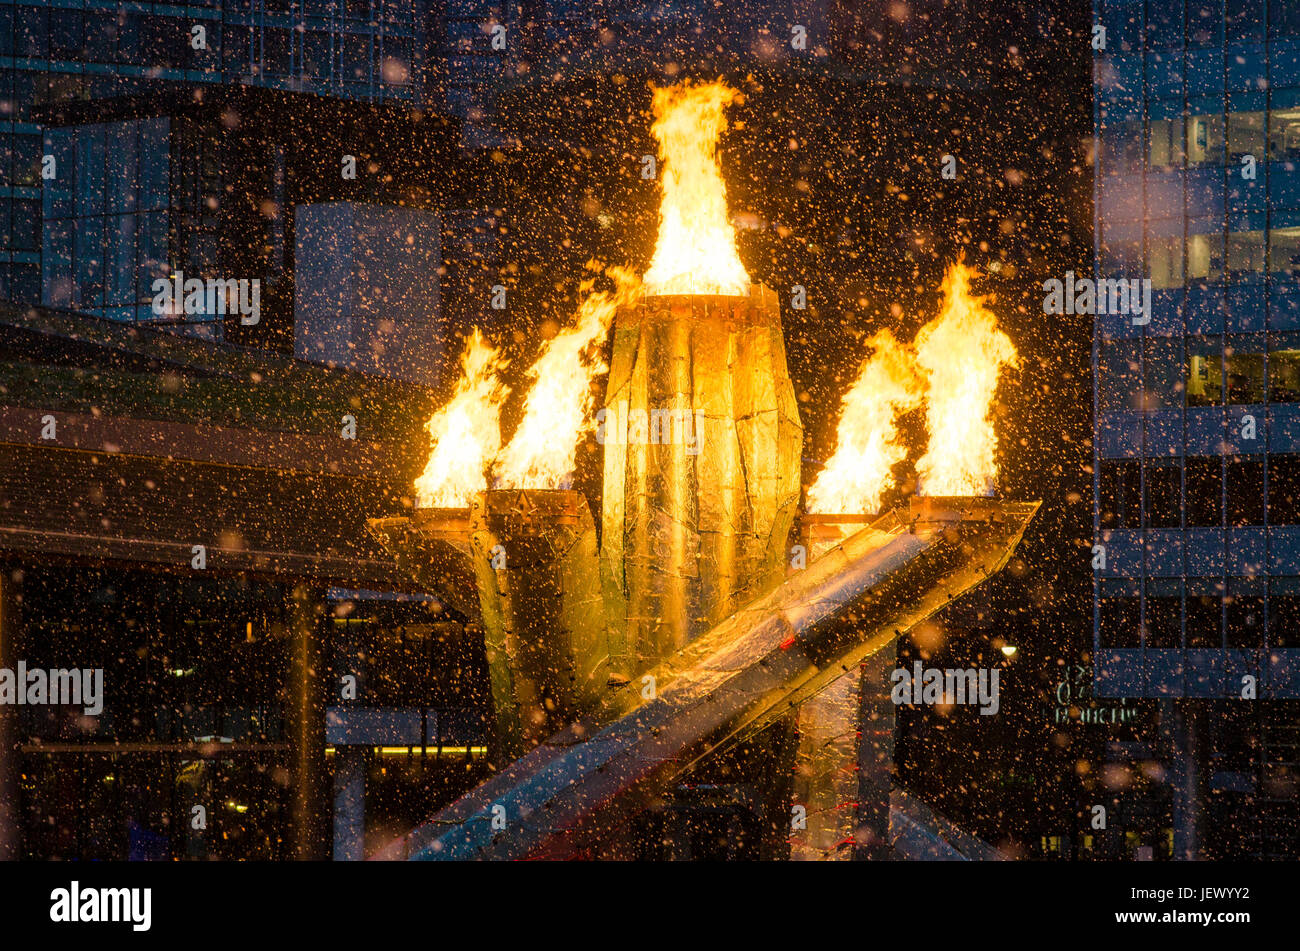 The Olympic Cauldron and flame during snowstorm, Vancouver, BC, Canada - Stock Image